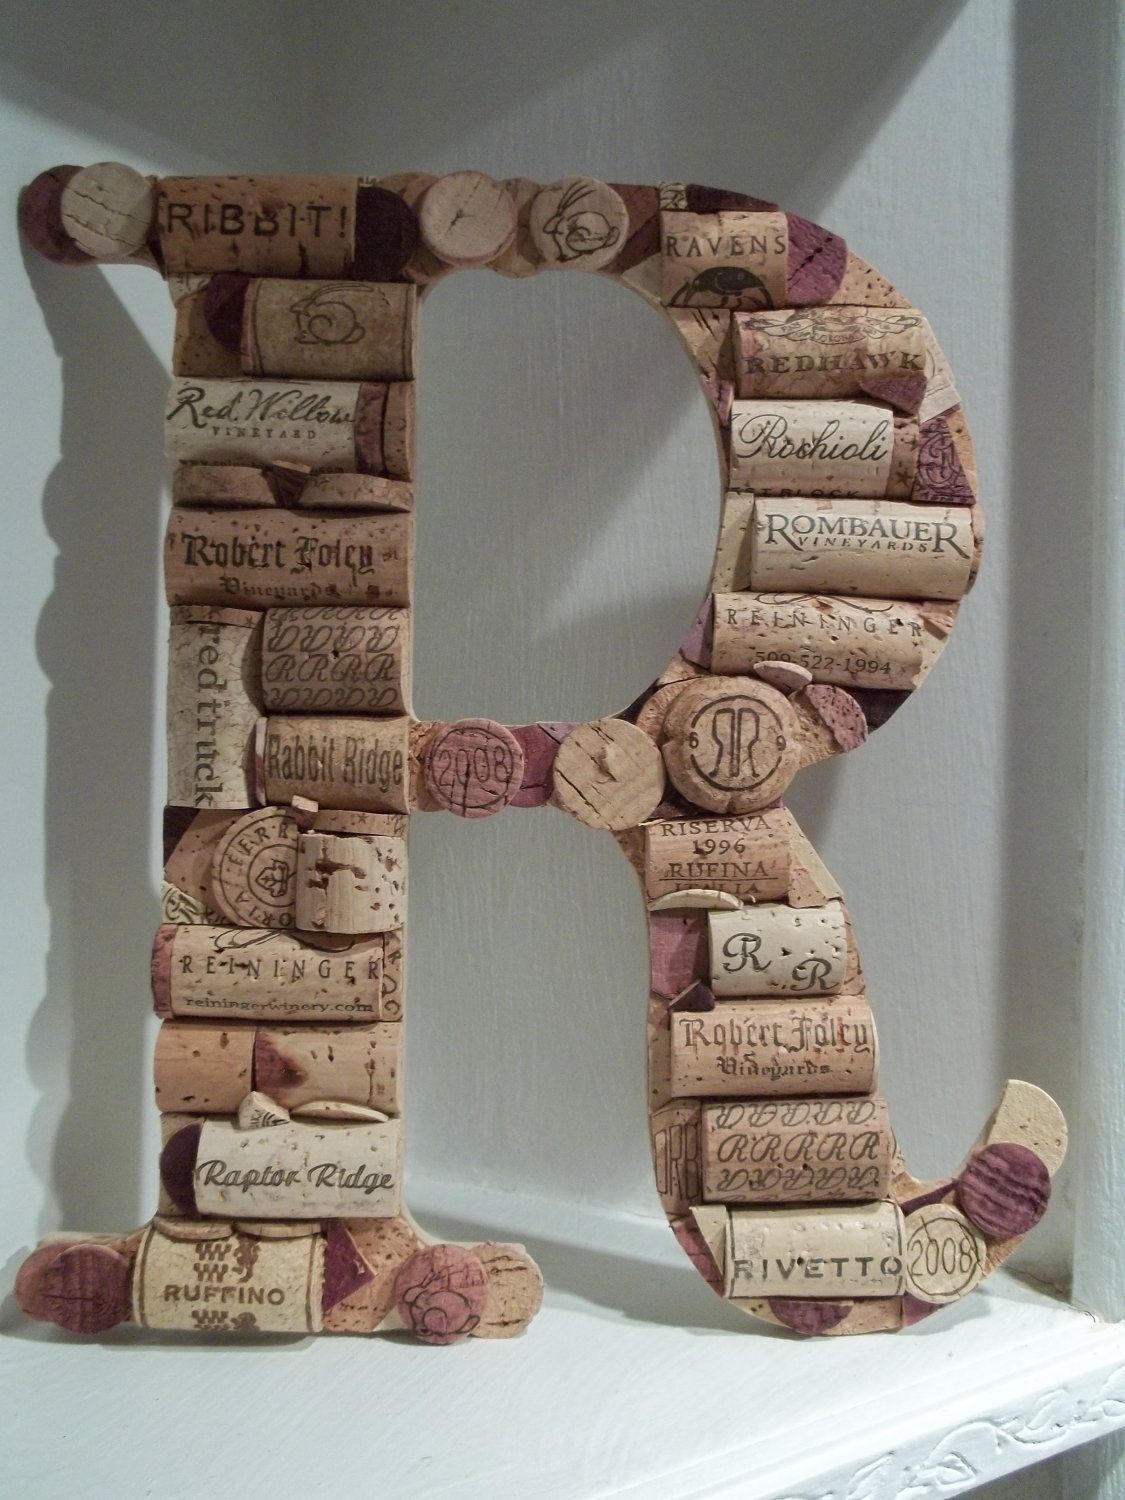 Cork letters - notice the corks have the letter R on them.